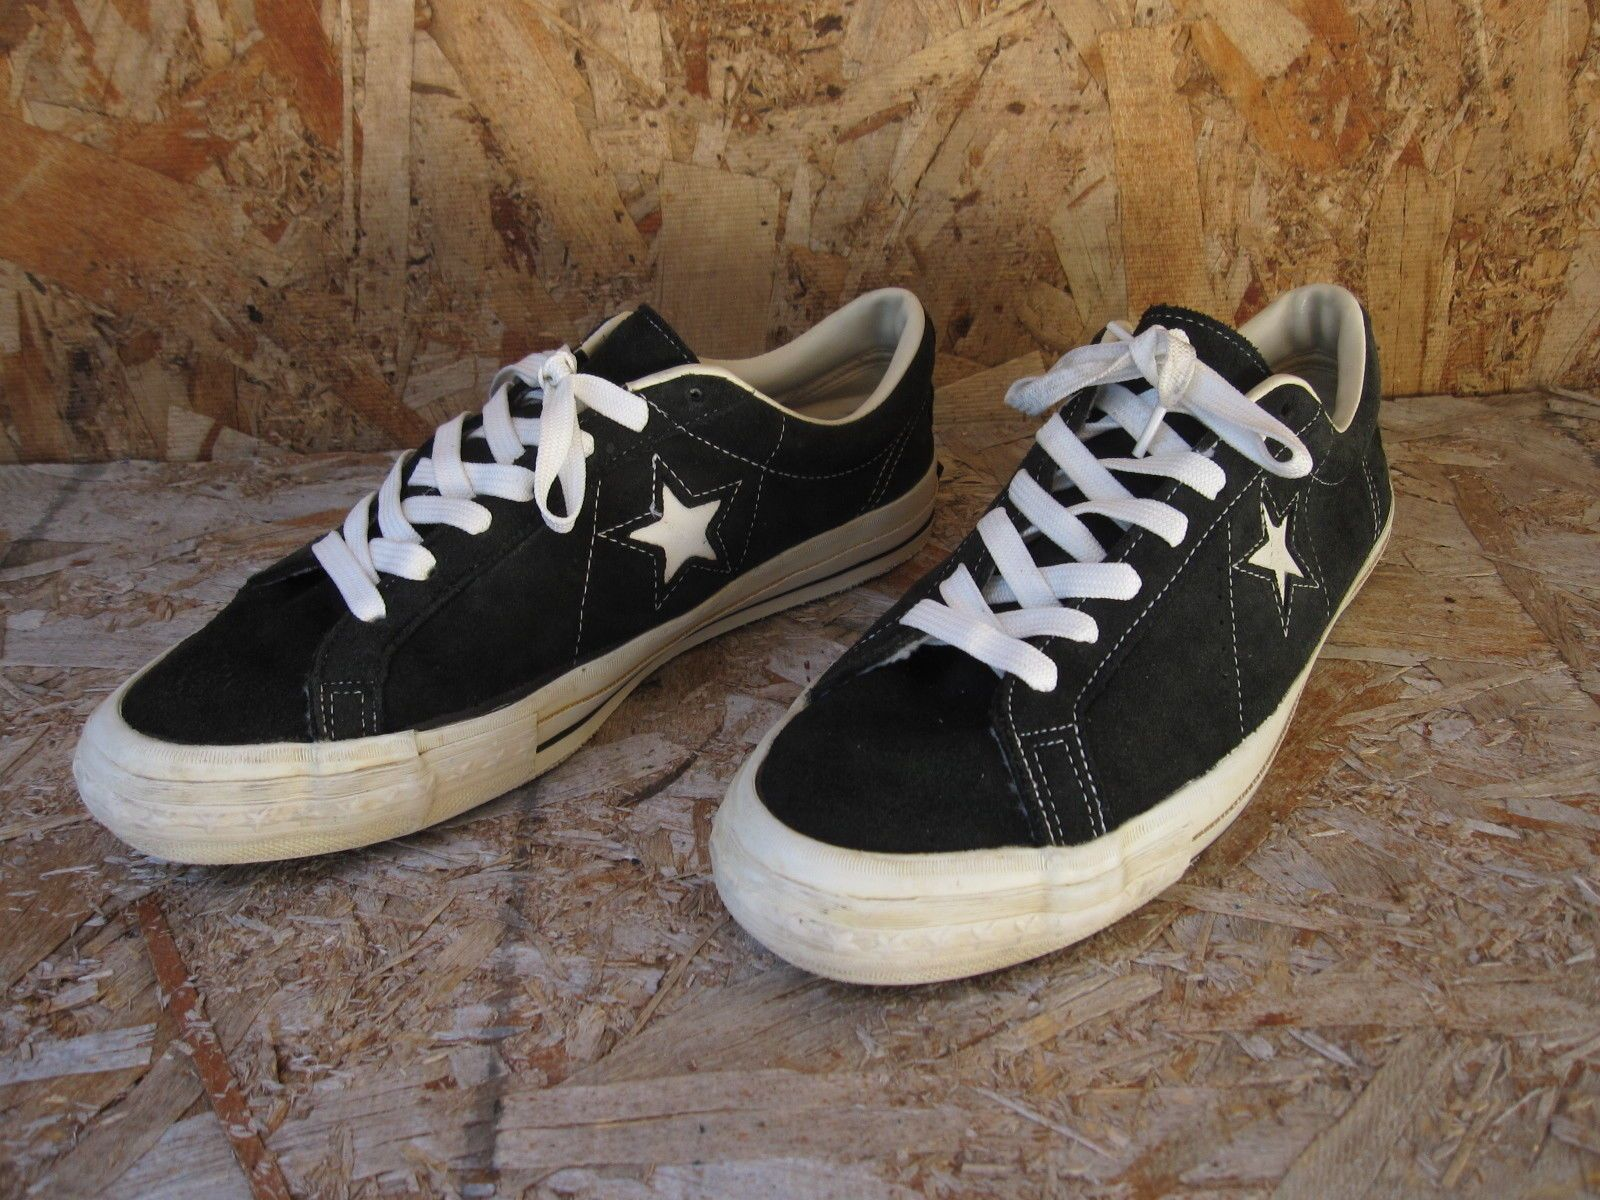 53c2af4b50eb Vtg Men s Converse One Star Low Made in USA Shoes Sz 9.5 Black Suede ...